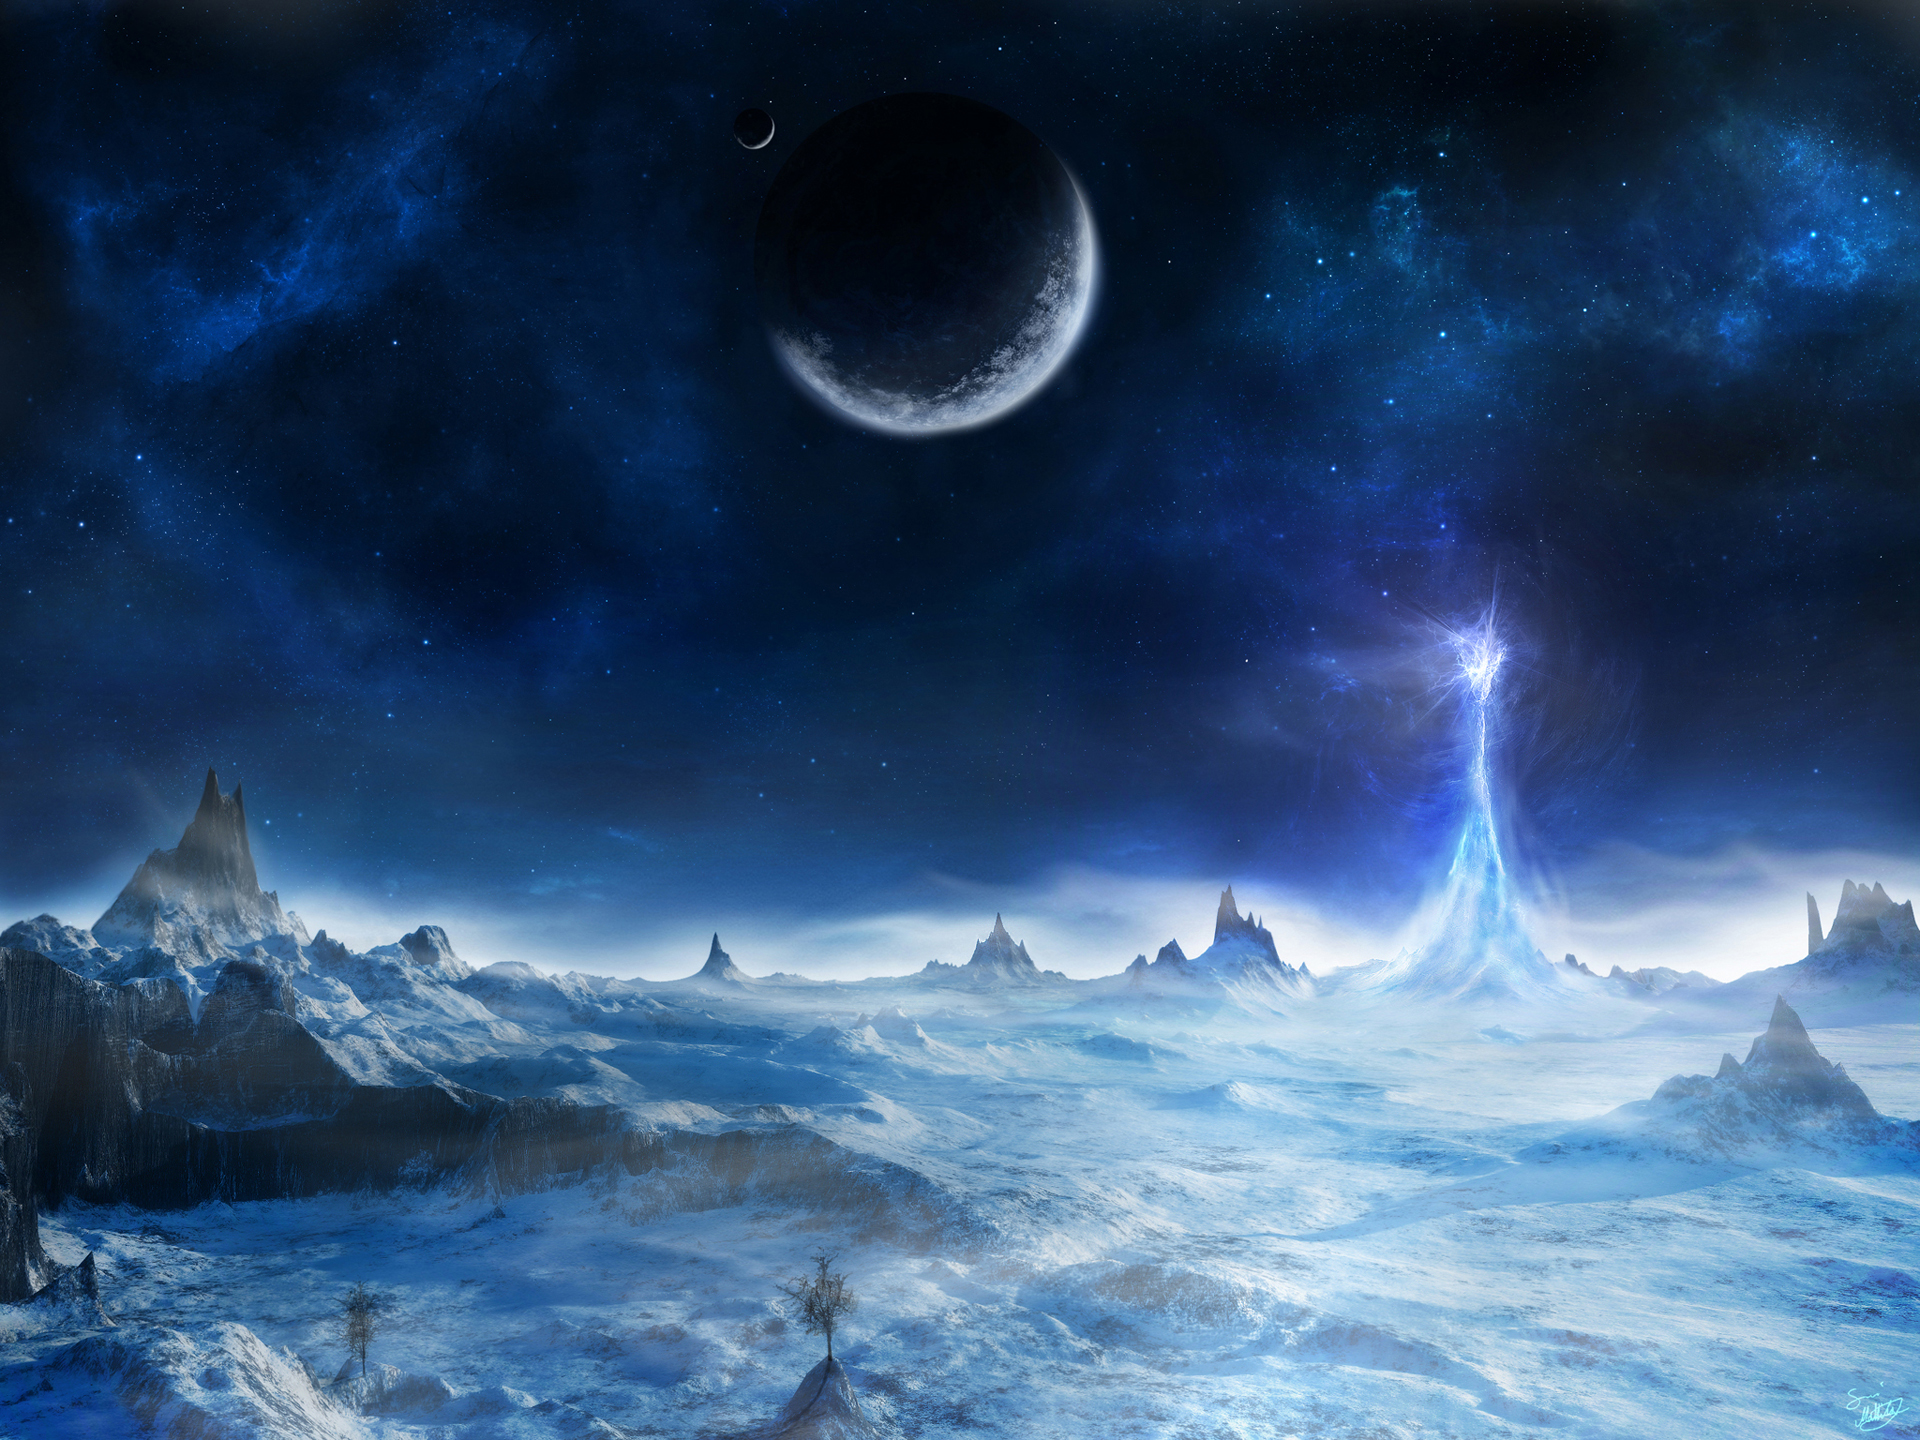 Full HD Wallpapers Space Blue Ice Planets Landscapes by Sami 1920x1440